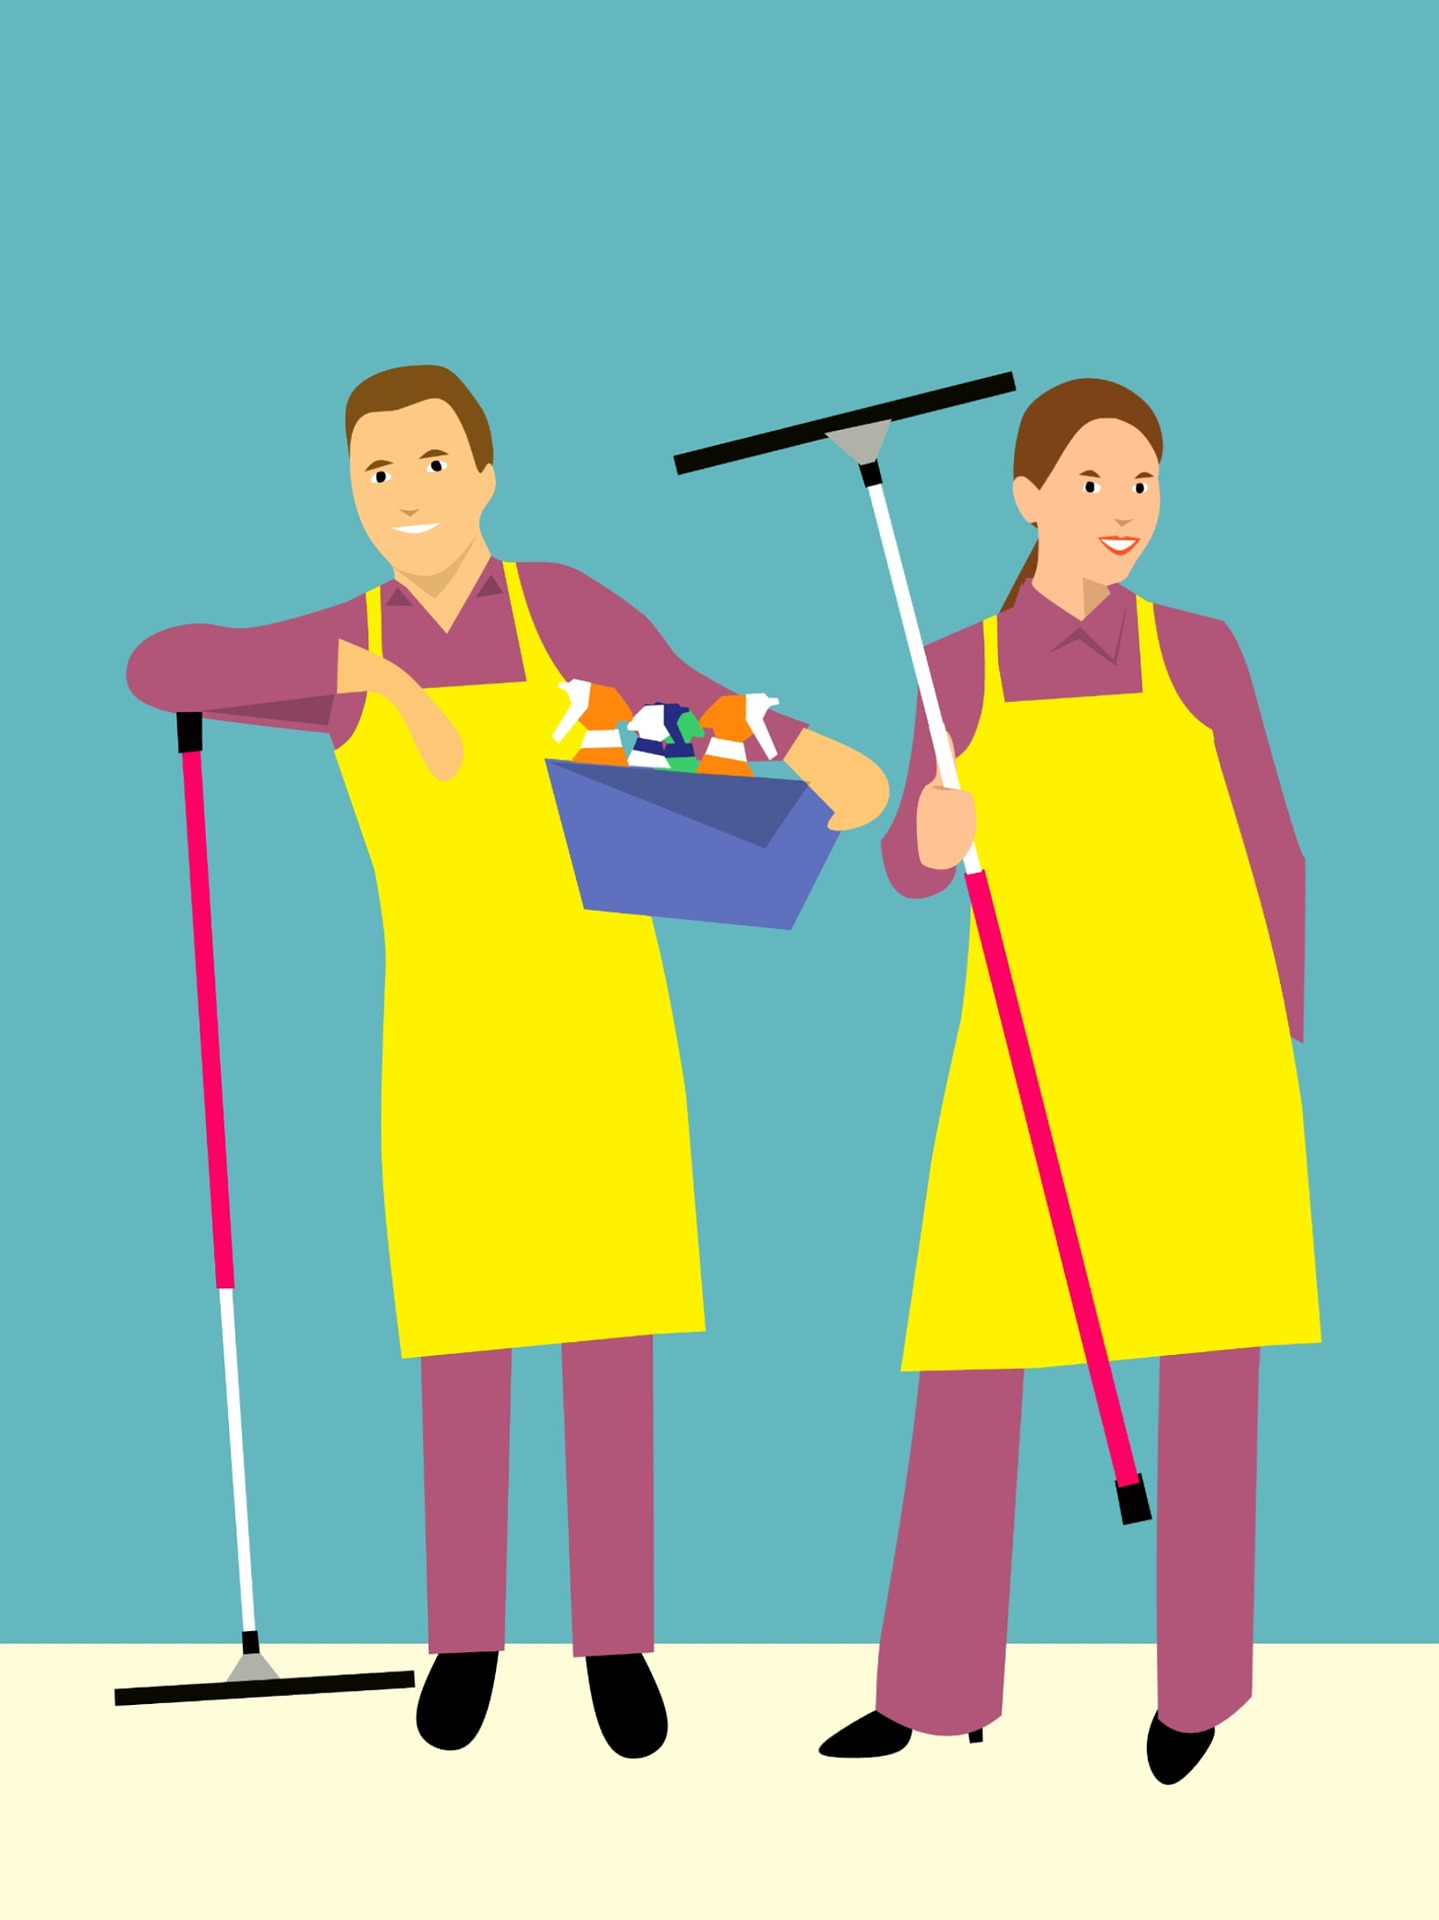 together-cleaning-the-house-2980867_1920